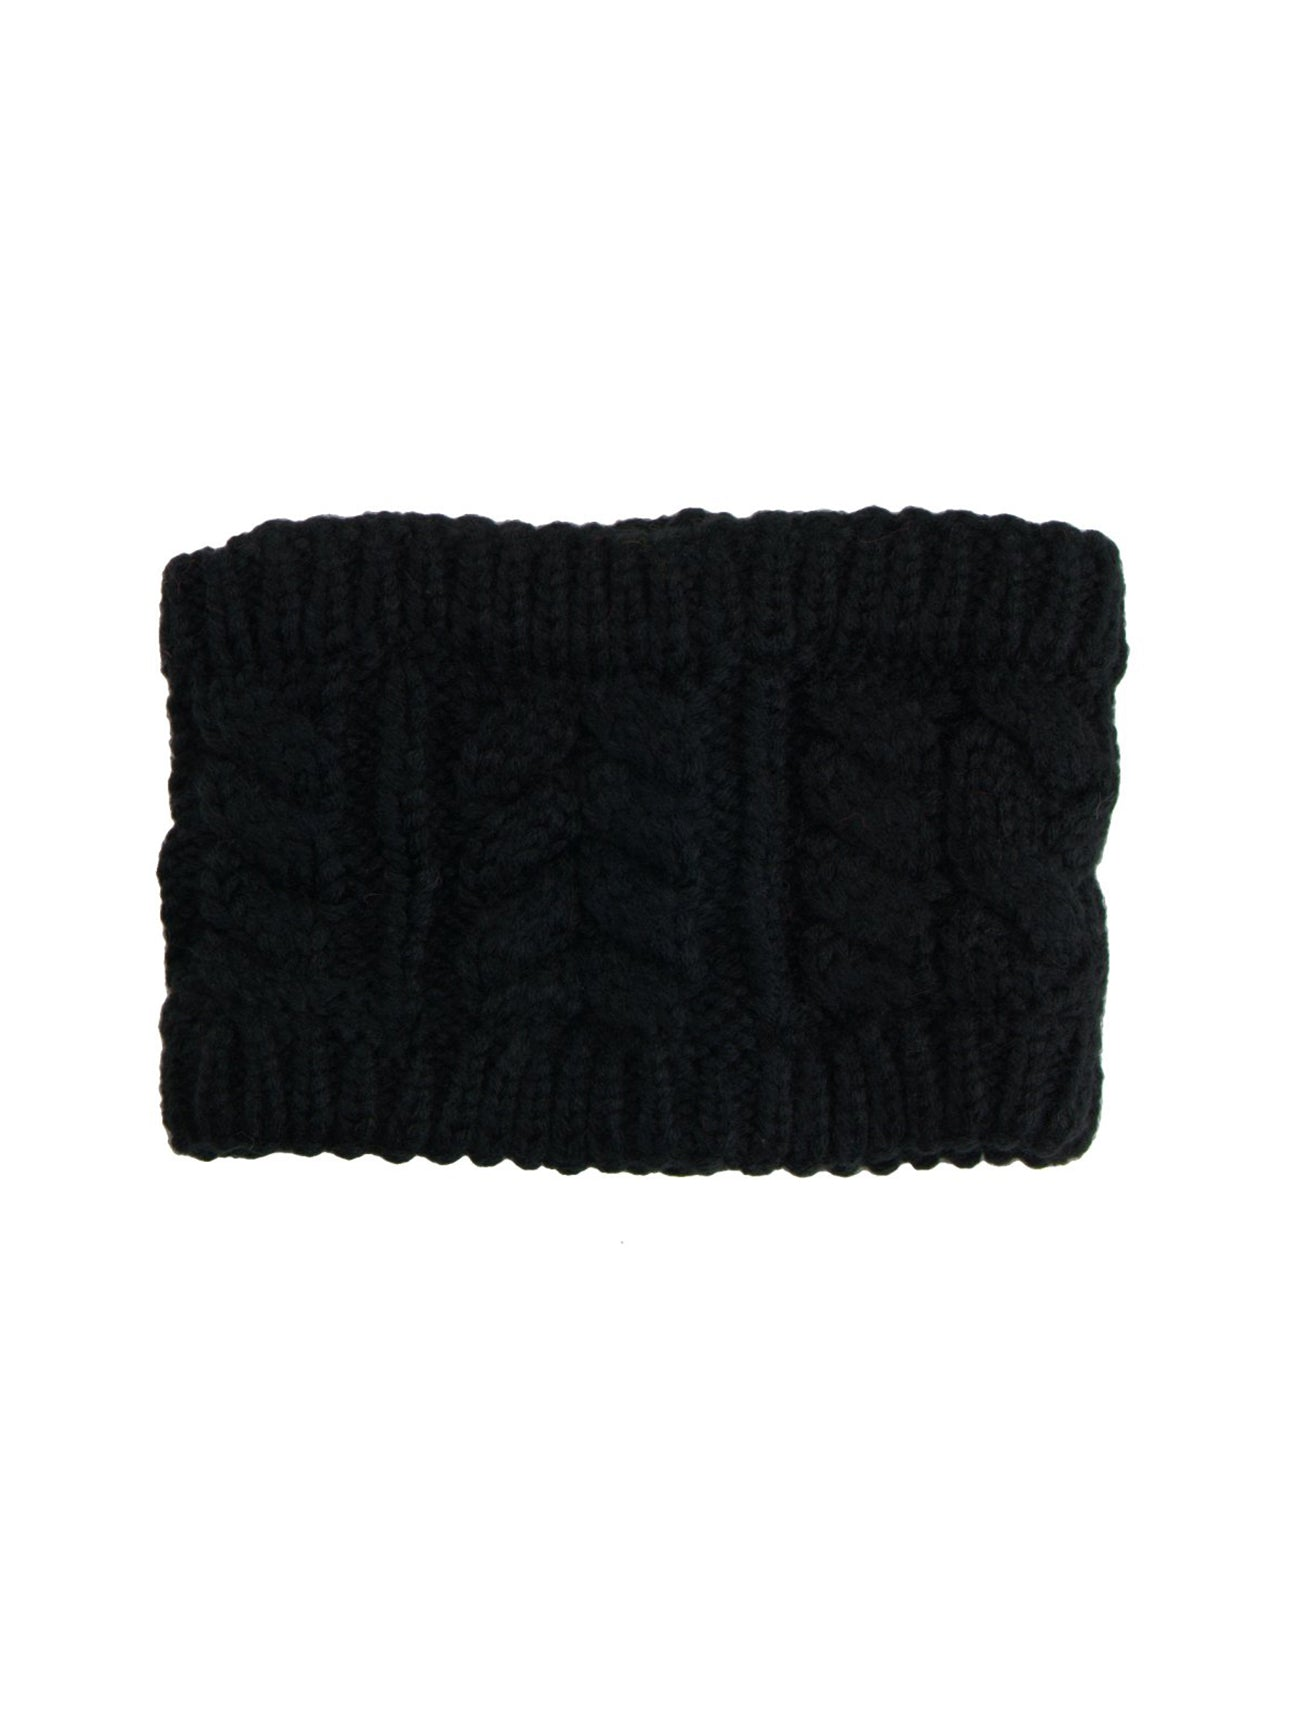 Black Cable Knitted Headband